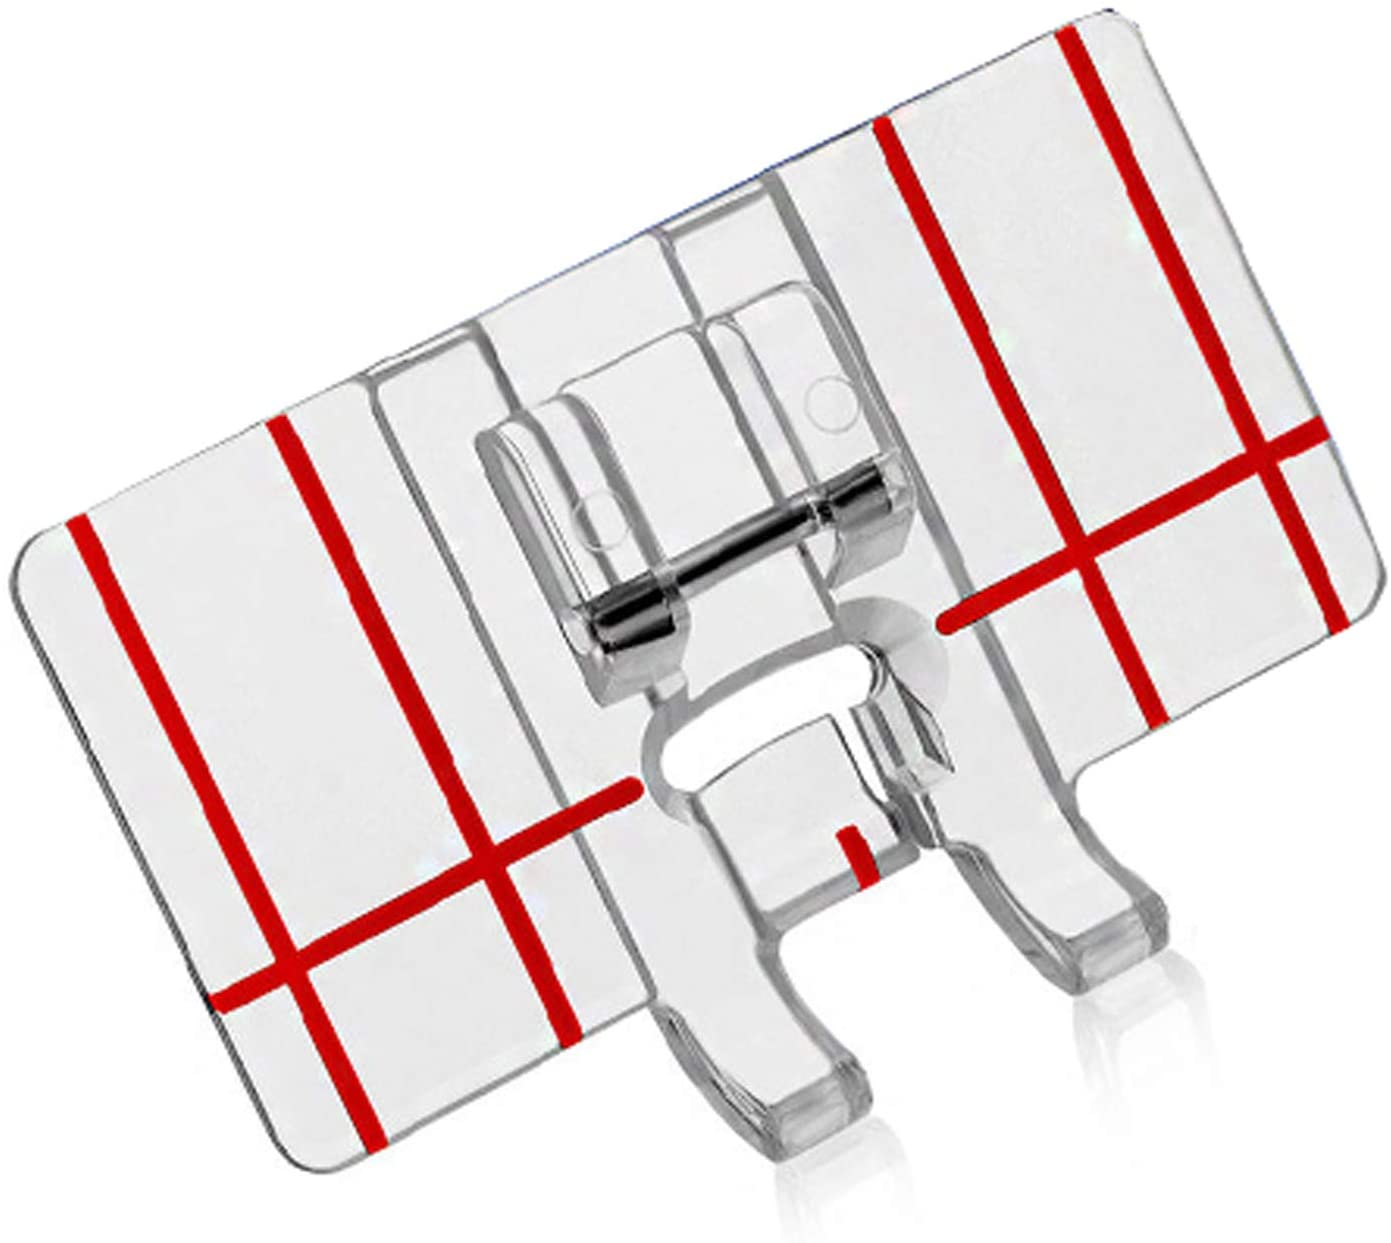 DREAMSTITCH BLDY-BGF, JAG605 Border Guide Presser Foot for All Low Shank Snap-On Singer,Brother,Babylock,Euro-Pro,Janome,Kenmore,White,Juki,Janome(New Home),Simplicity,Elna Sewing Machine 605